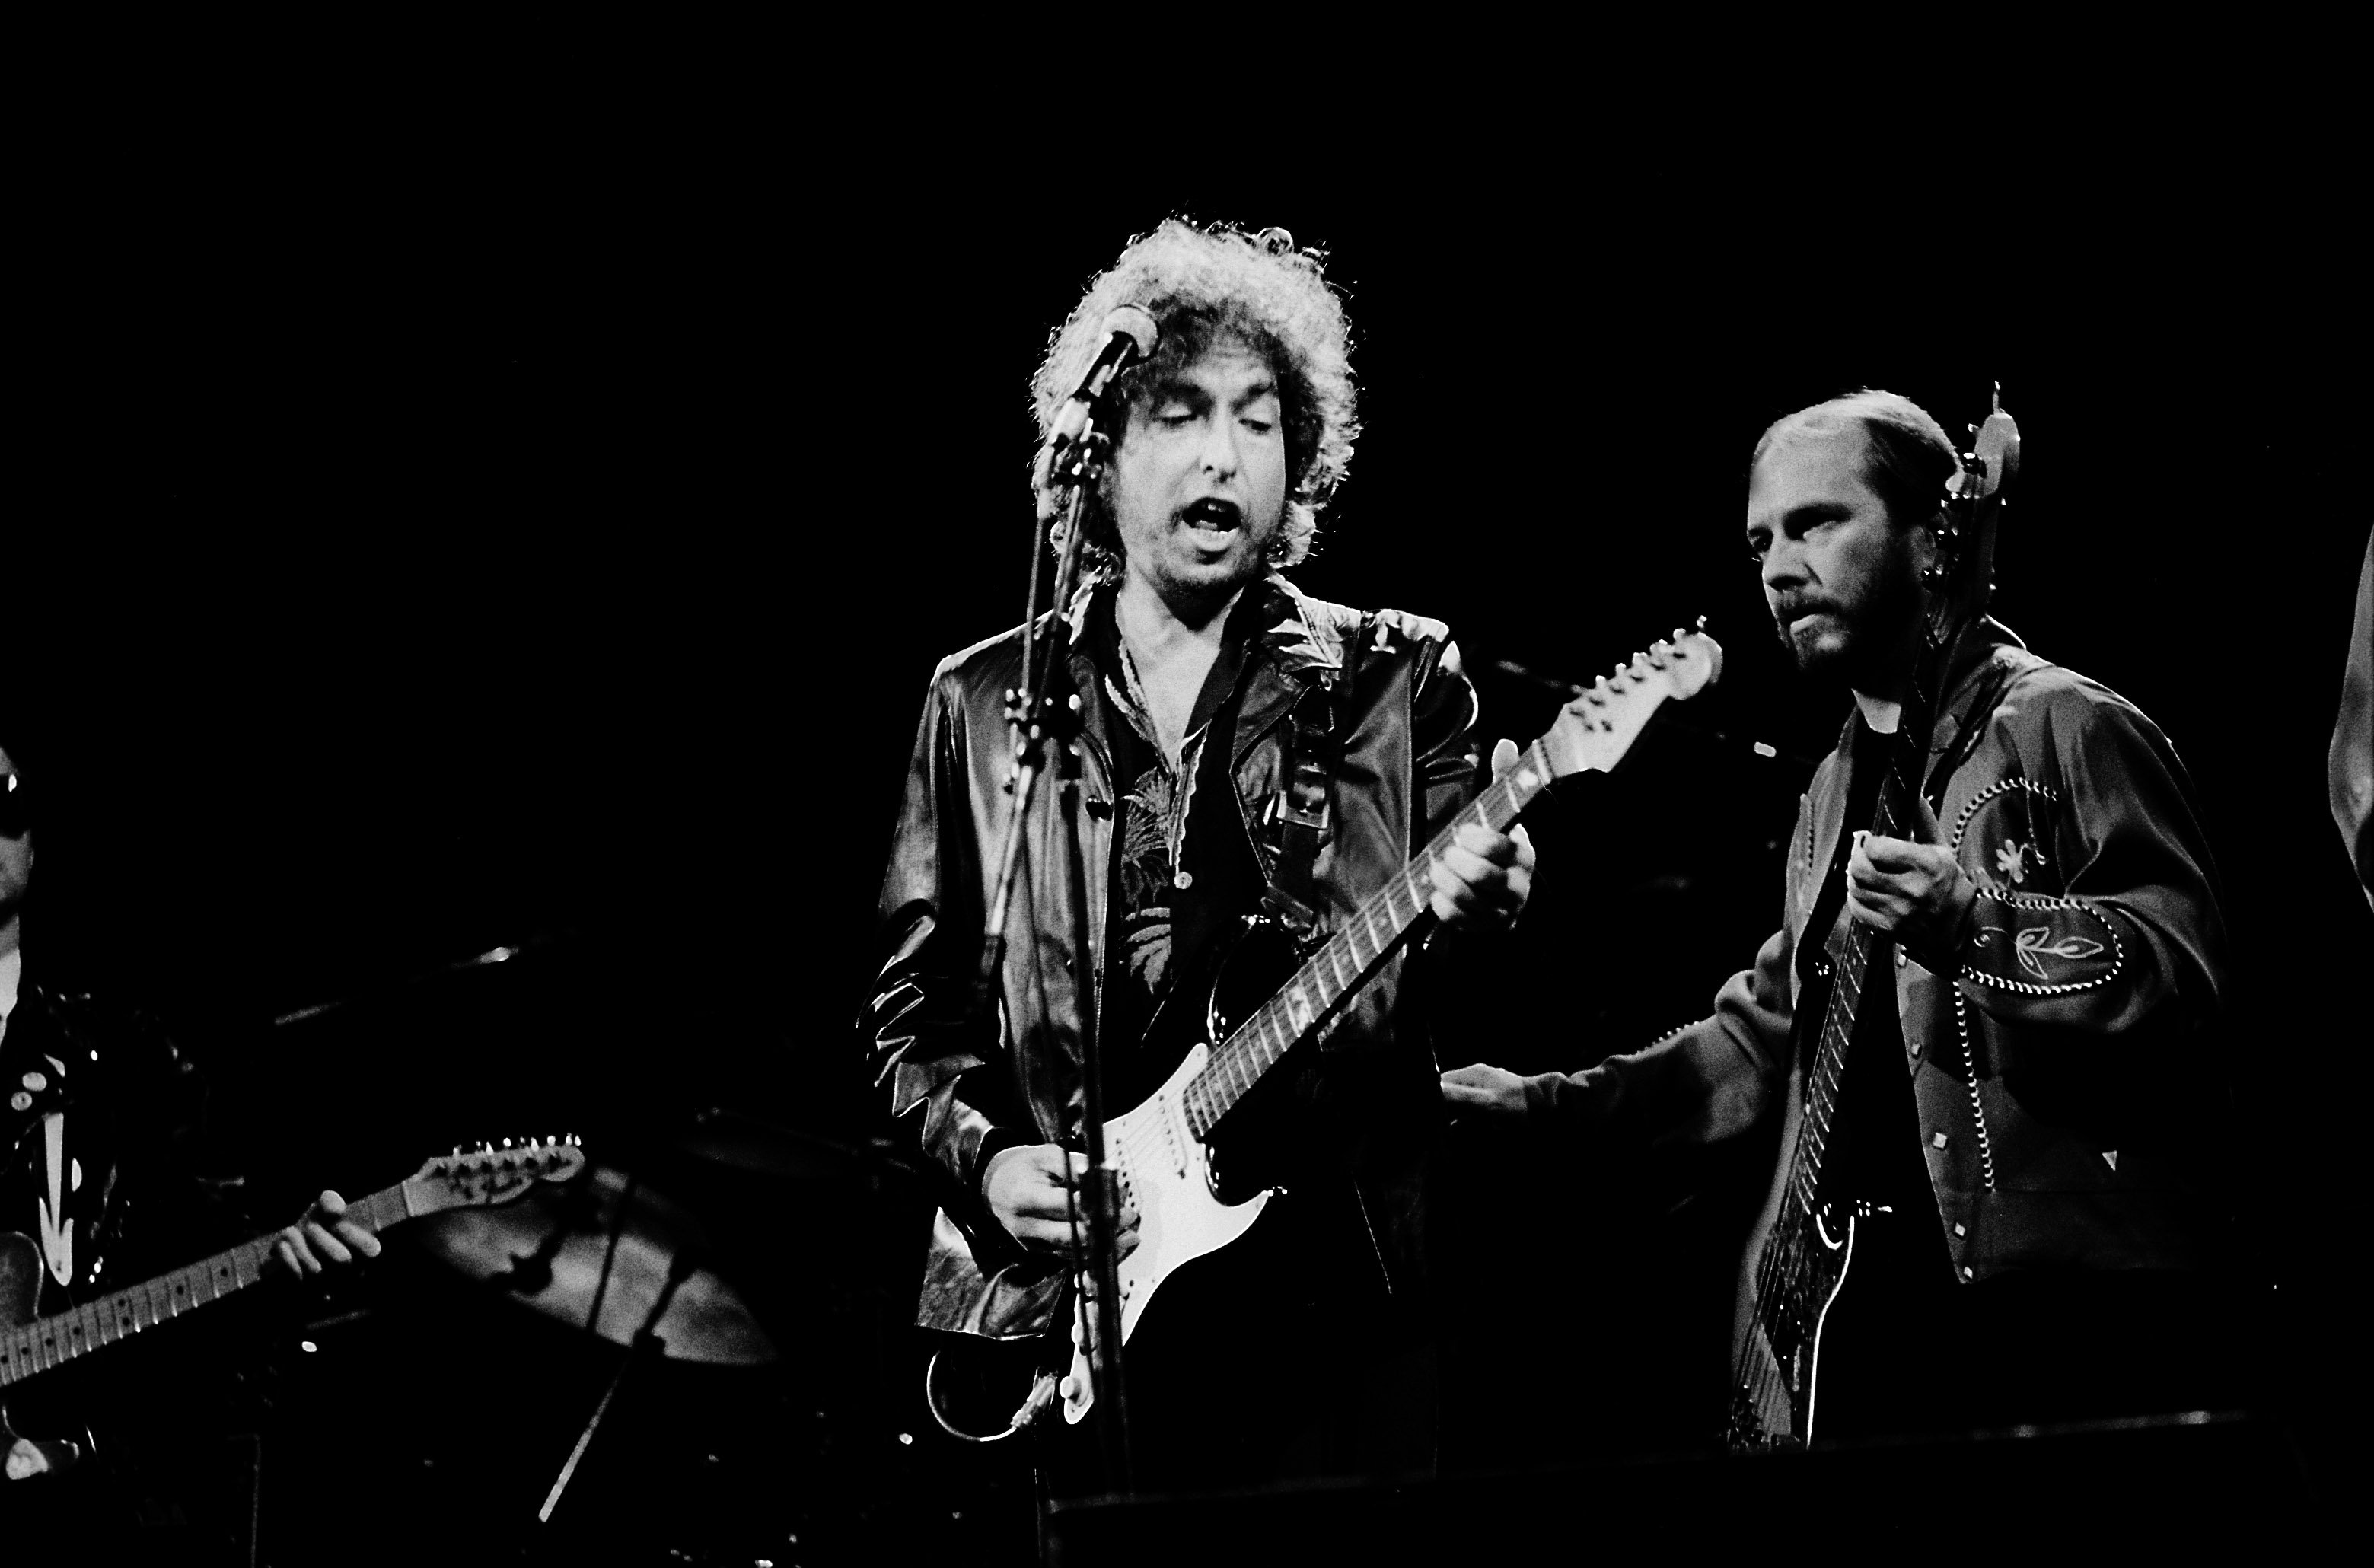 American musicians Bob Dylan (left) and Tim Drummond perform onstage at the Poplar Creek Music Theater in Hoffman Estates, Ch